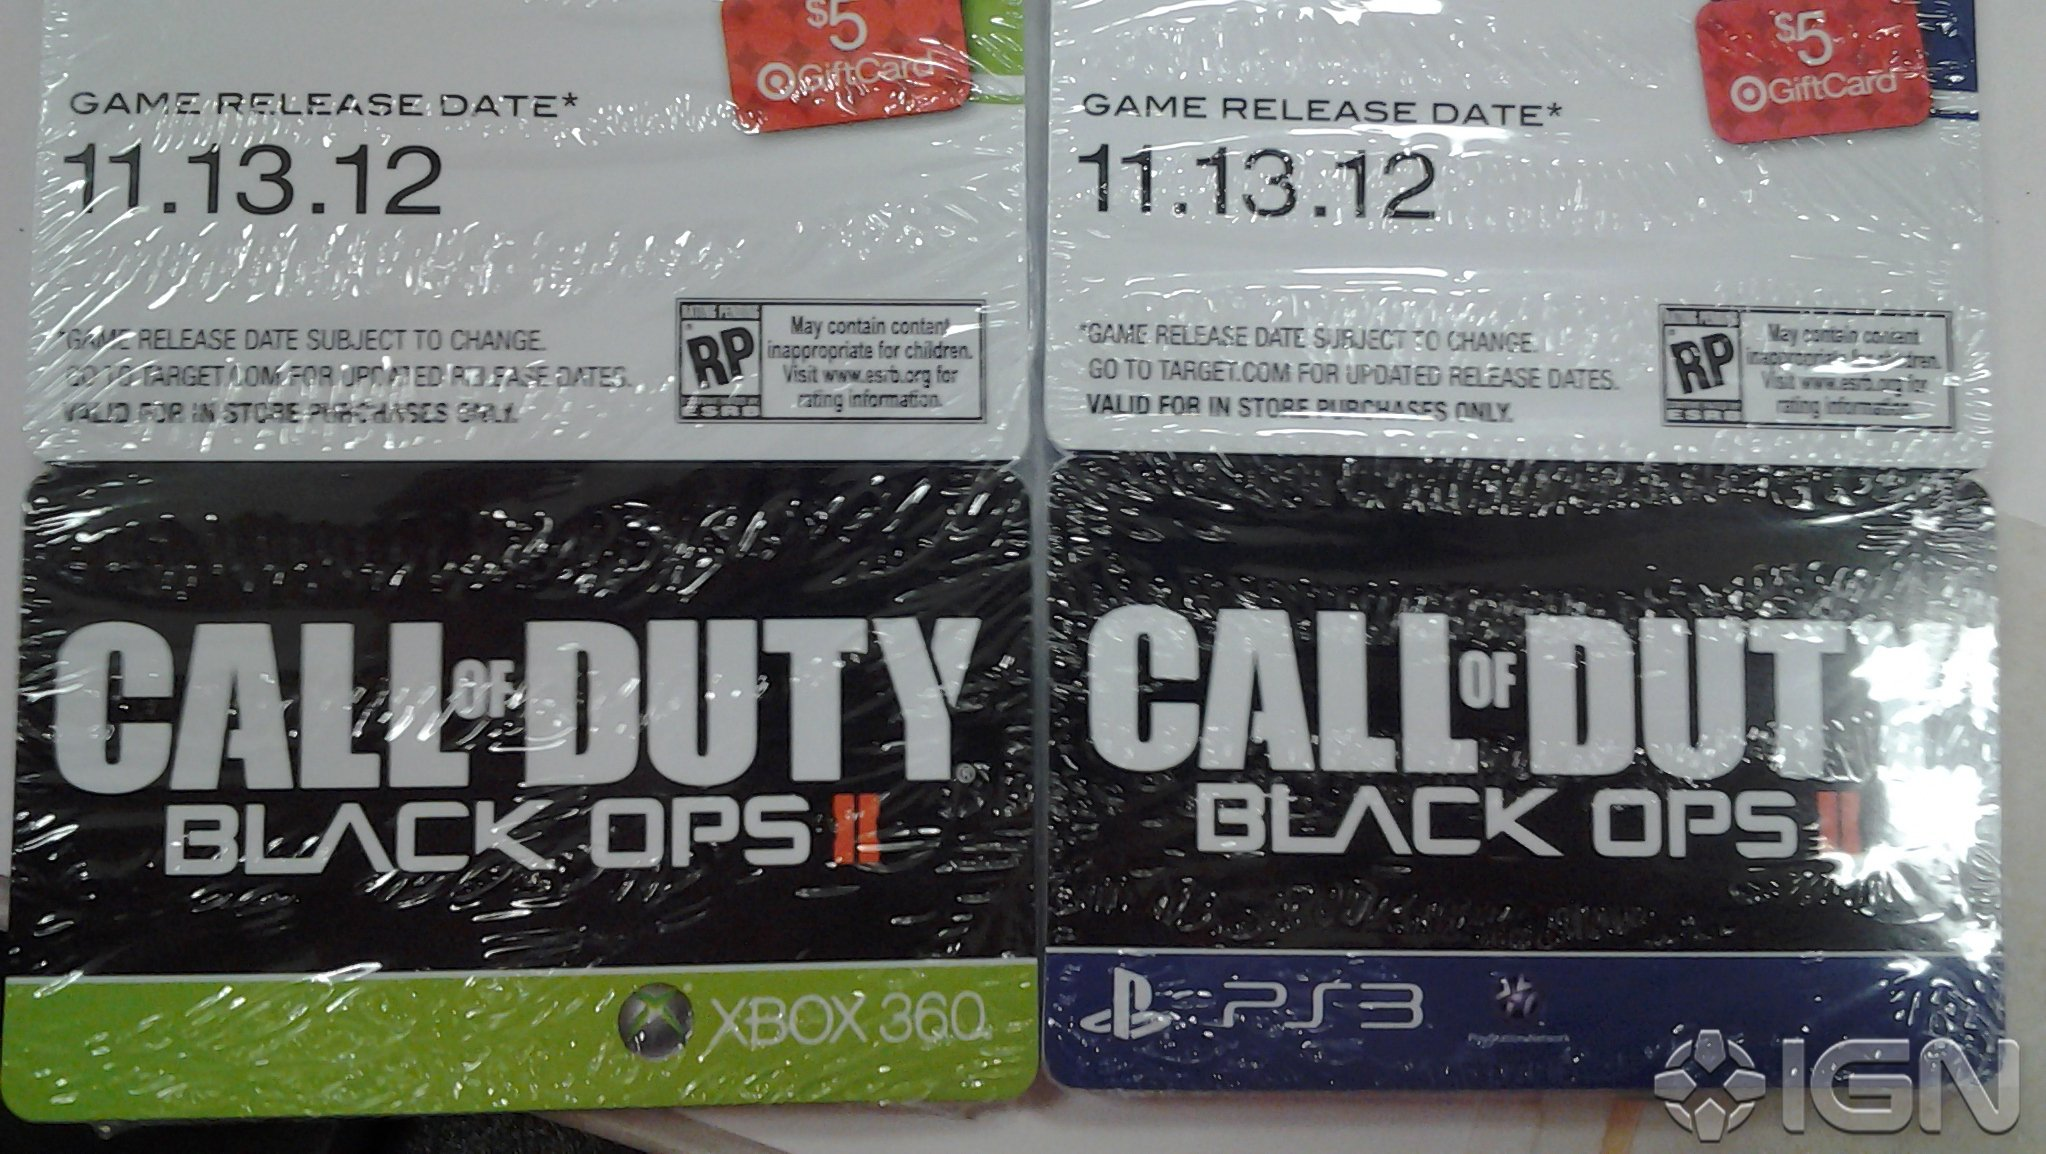 file_2729_call-of-duty-black-ops-2-preorder